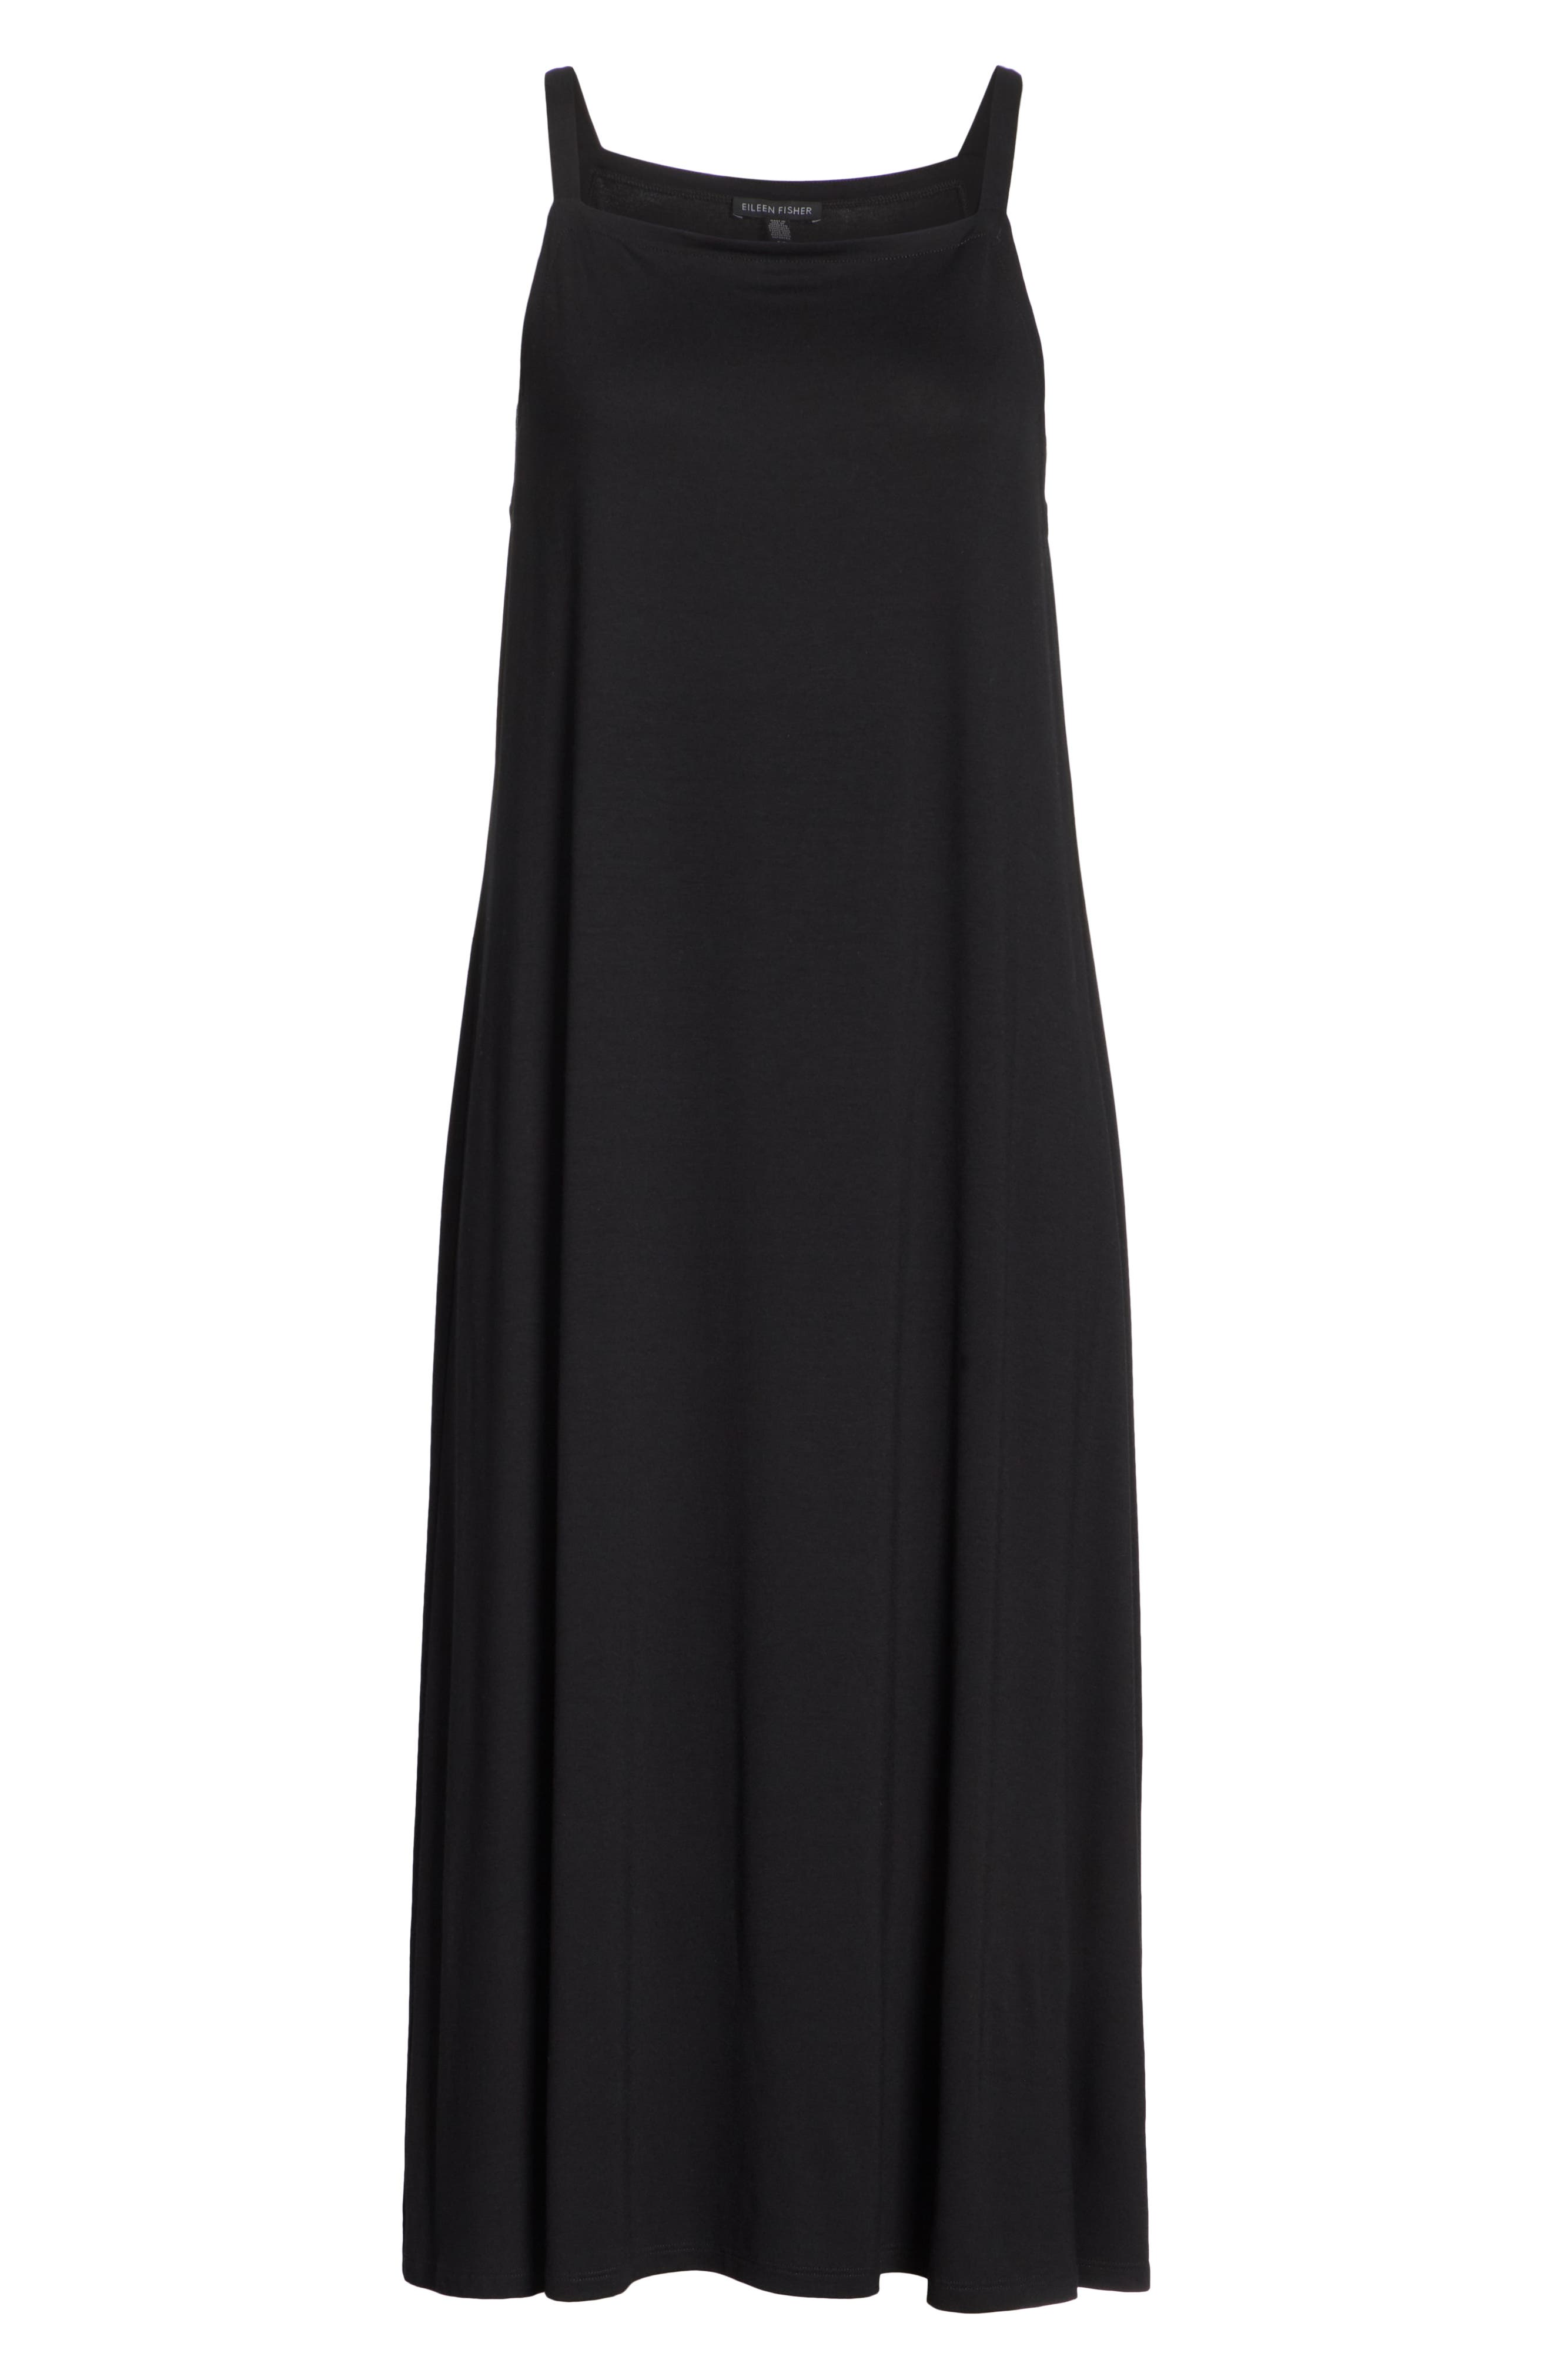 Cami Dress,                             Alternate thumbnail 7, color,                             BLACK